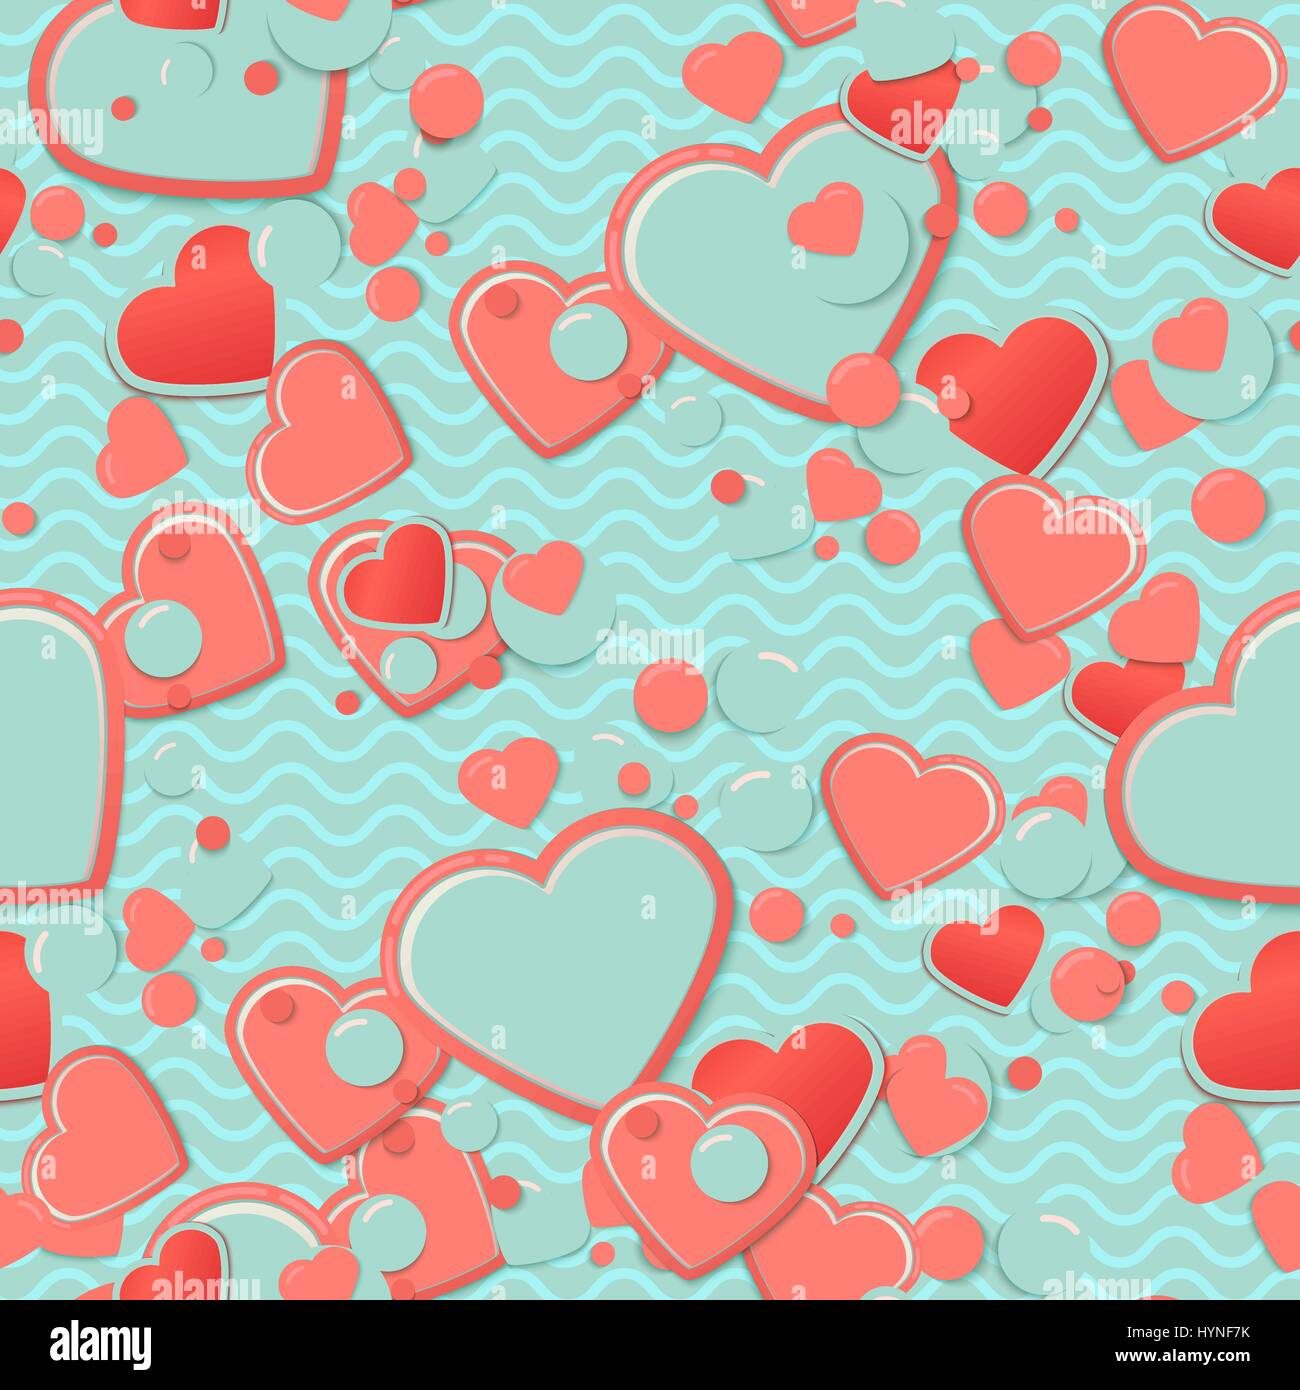 Blue Scrapbook paper, hearts with circles and waves. Valentines Day Greeting Card or postcard, scrap background. - Stock Vector